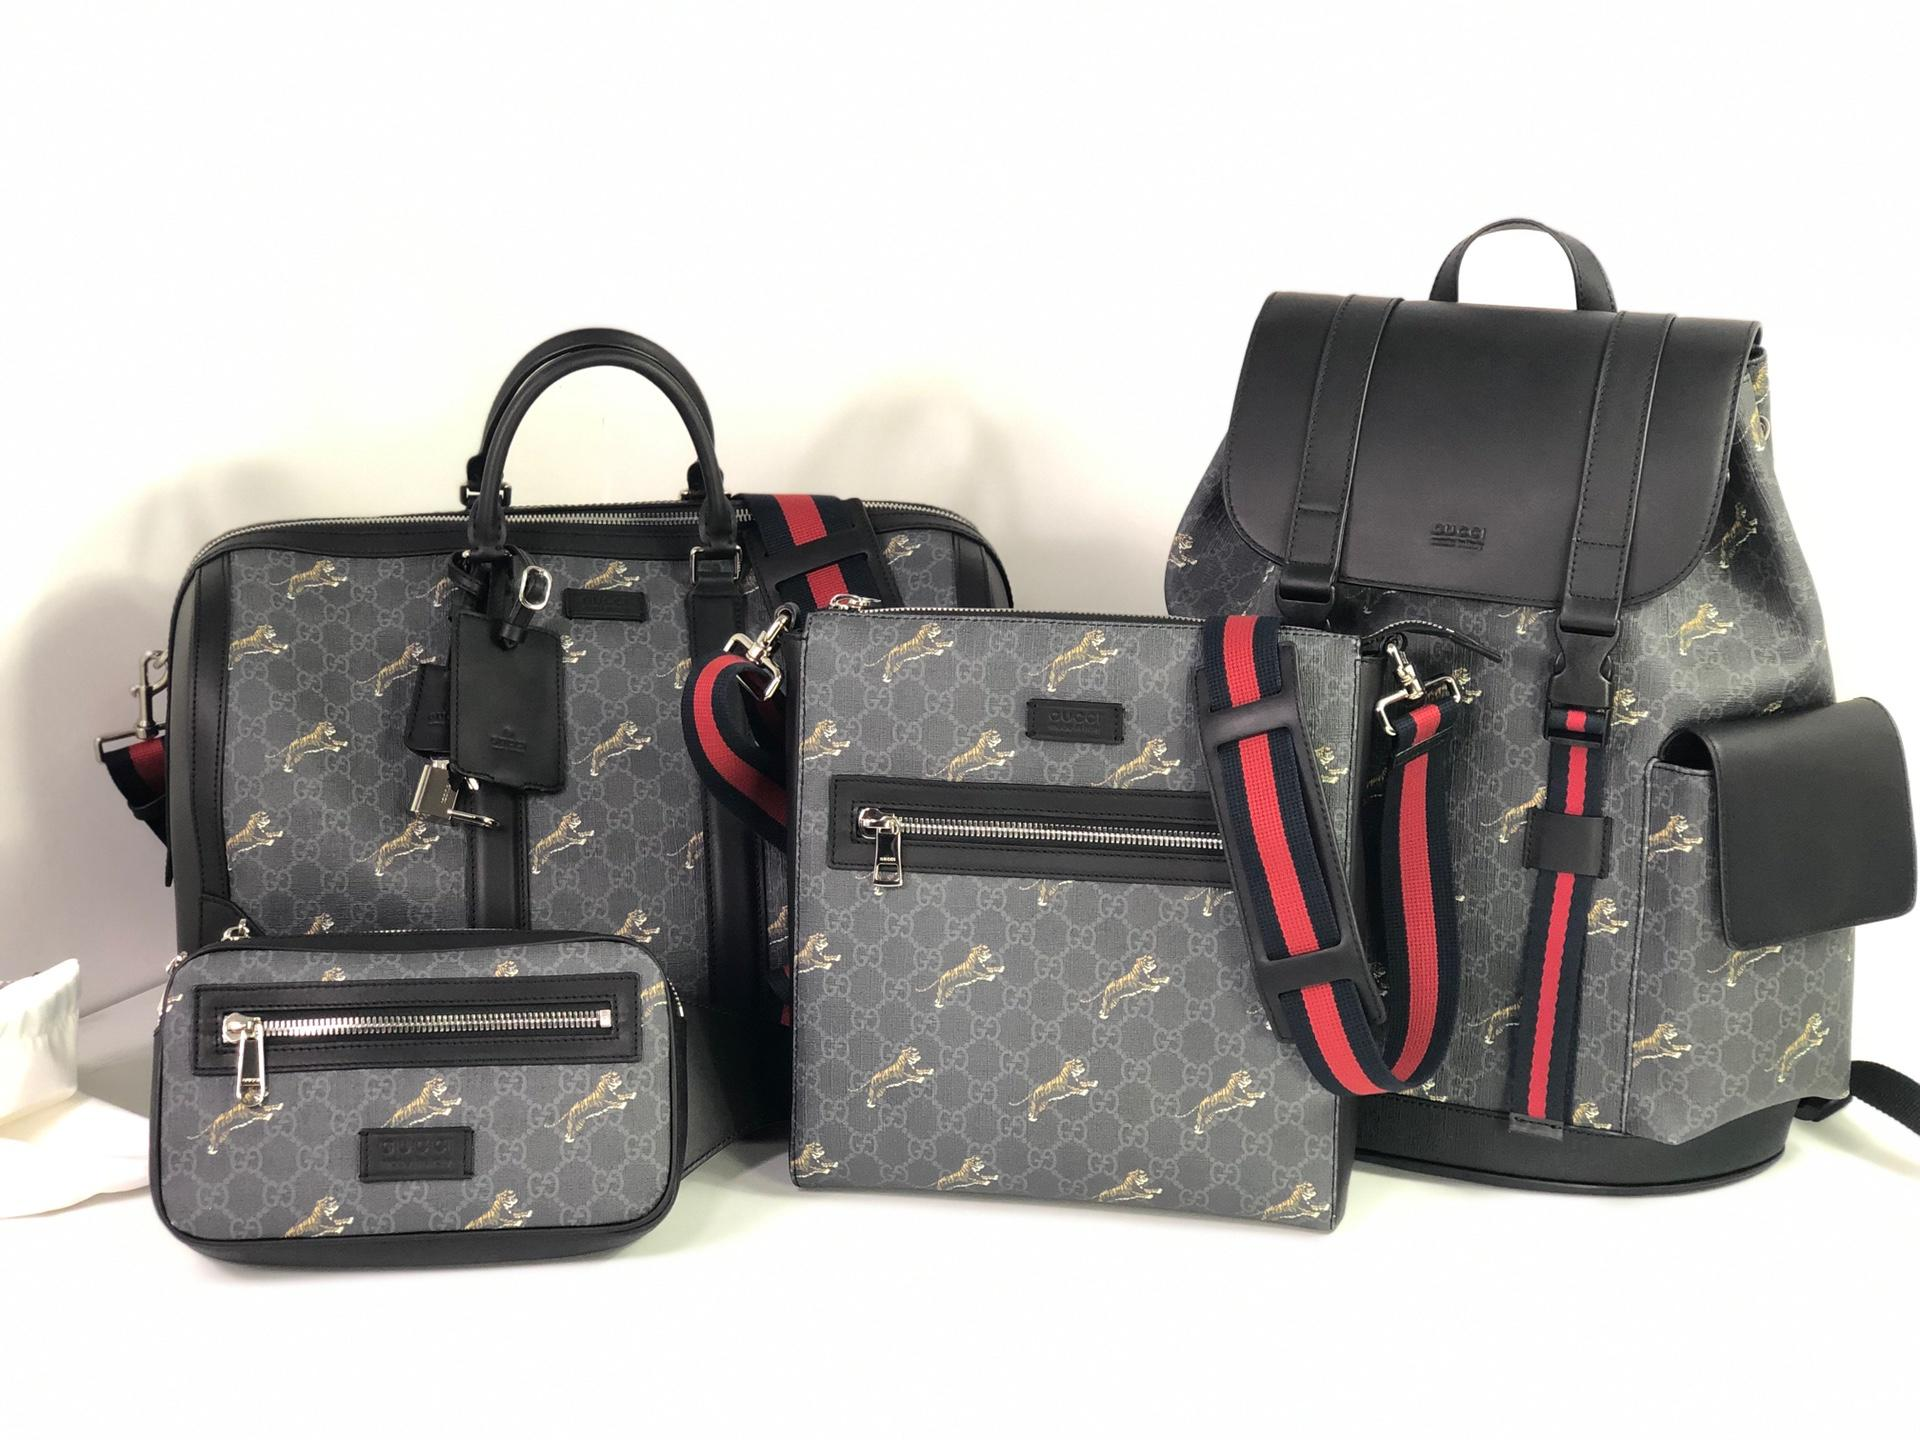 Replica Gucci GG Supreme Tigers Bags set